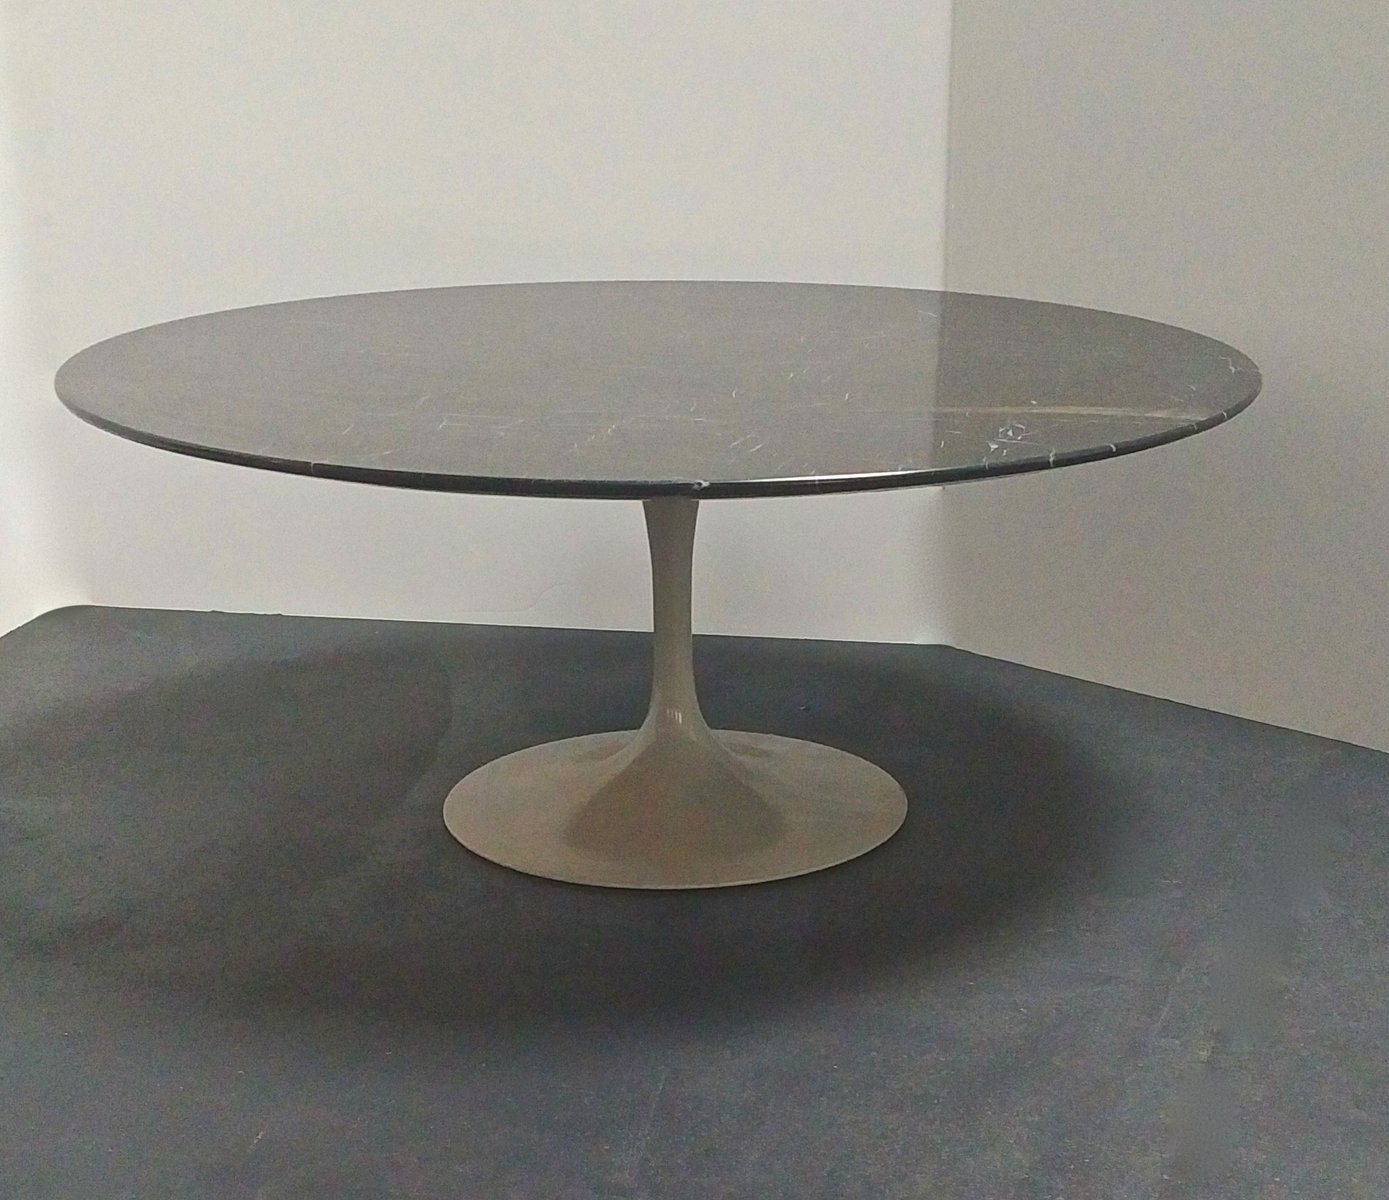 tulip coffee table by eero saarinen 1960s for sale at pamono. Black Bedroom Furniture Sets. Home Design Ideas